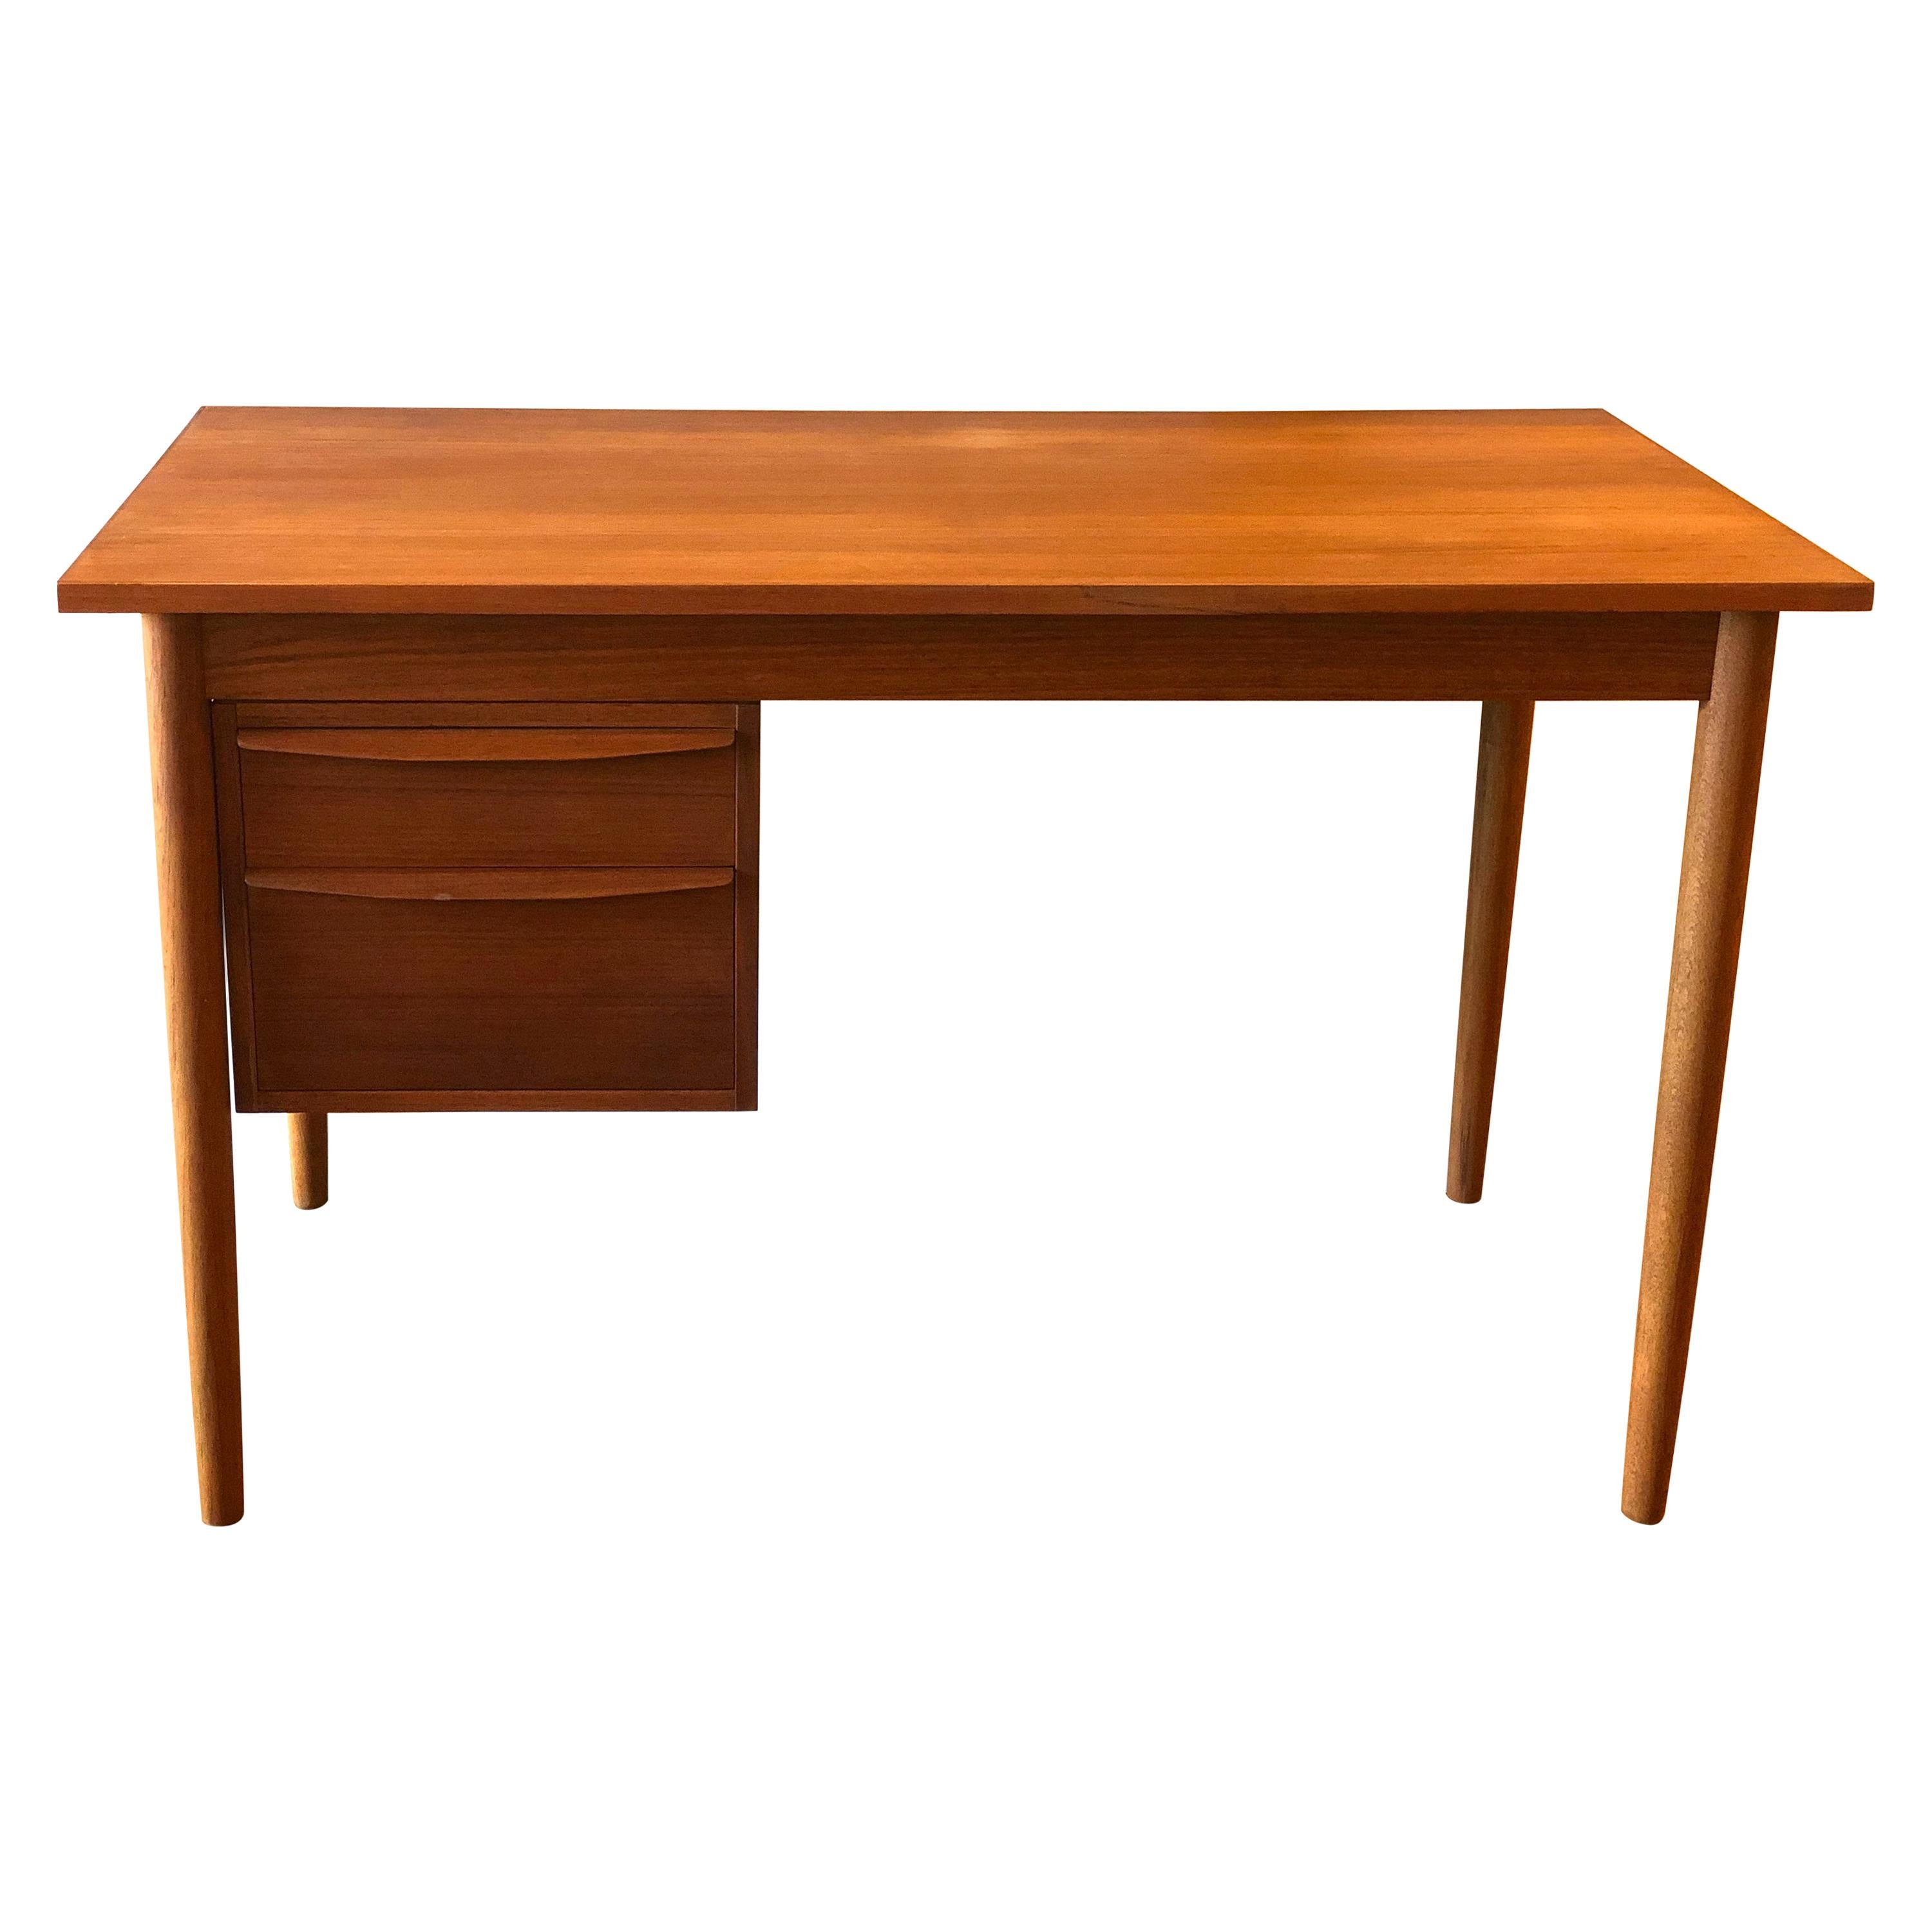 Image of: Danish Modern Teak Small Desk With Sliding Drawers For Left And Right Sided Person At 1stdibs